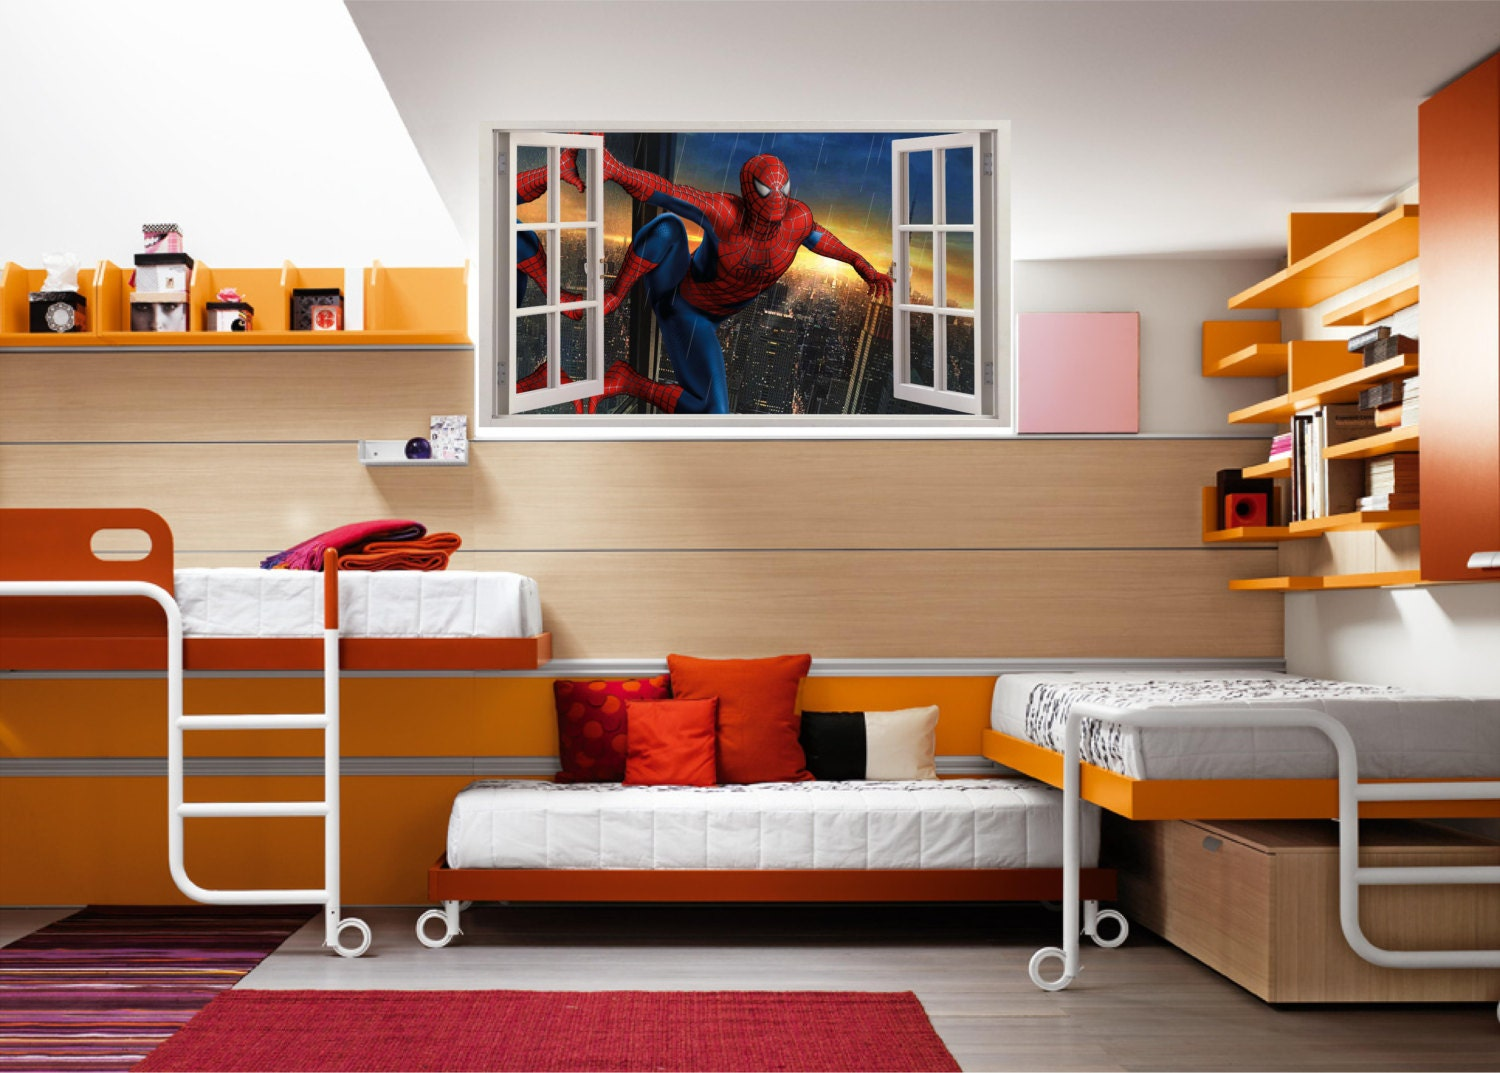 spiderman peel and stick wall decals funkthishouse com funk spiderman smashed through wall decal by lizashopco spiderman window wall decal by wallvinylconnection